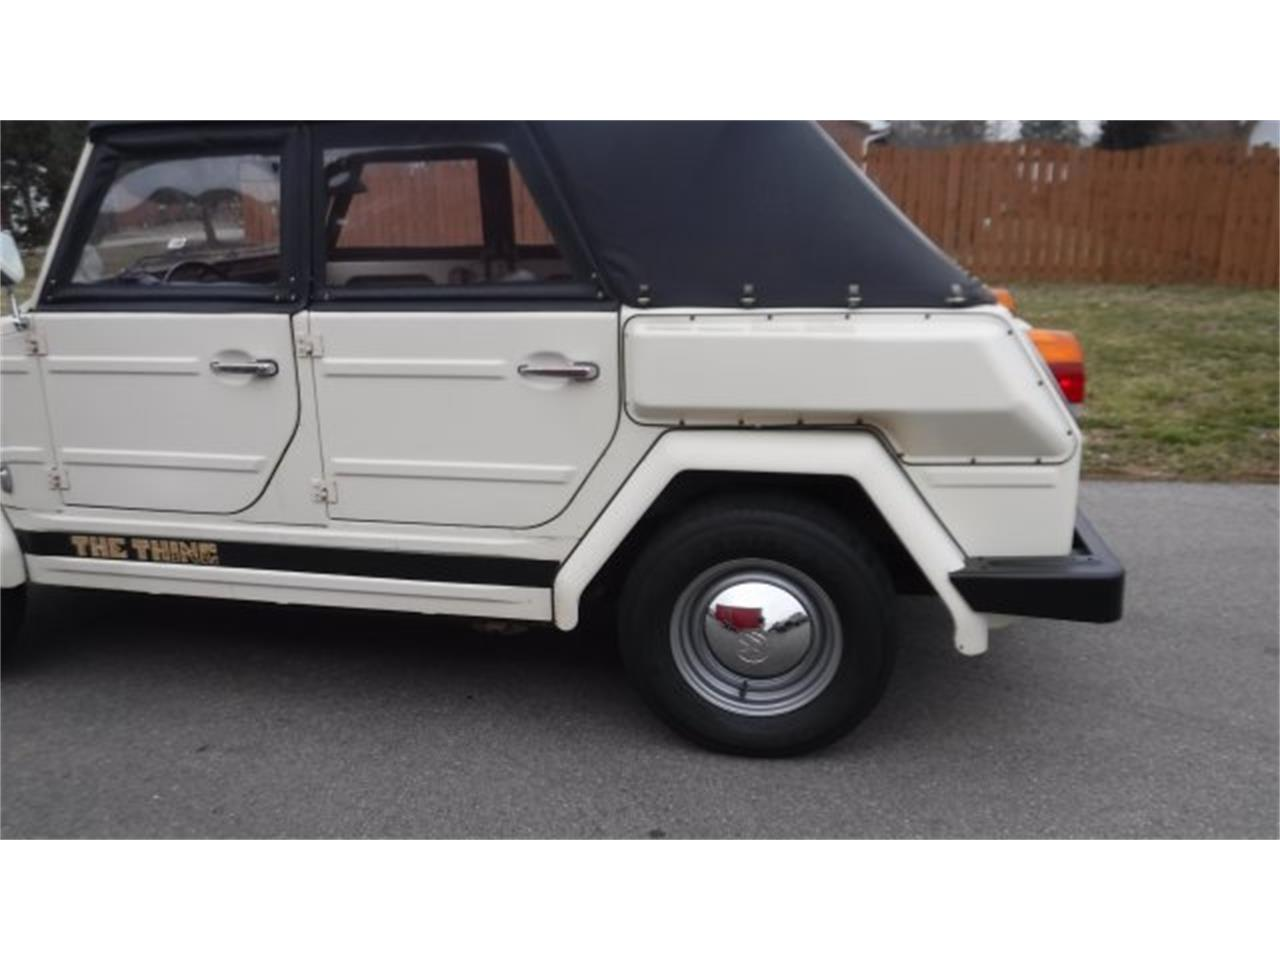 Large Picture of 1974 Volkswagen Thing located in Milford Ohio - $19,950.00 - PJRJ